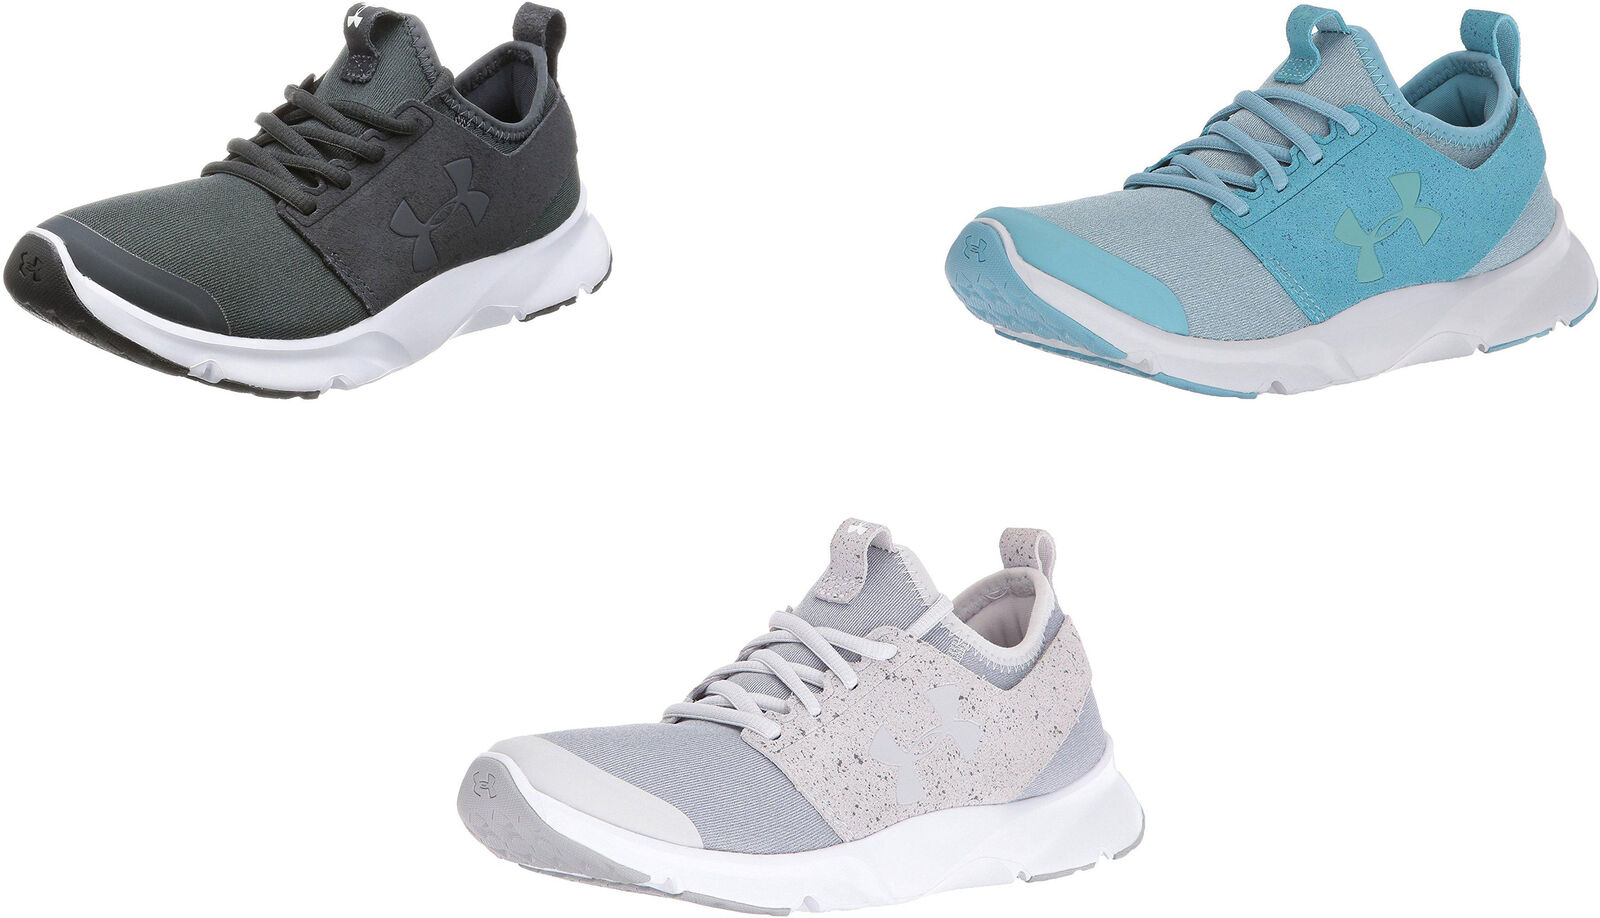 Under Armour Women's Drift RN Mineral Sneakers, 3 Colors